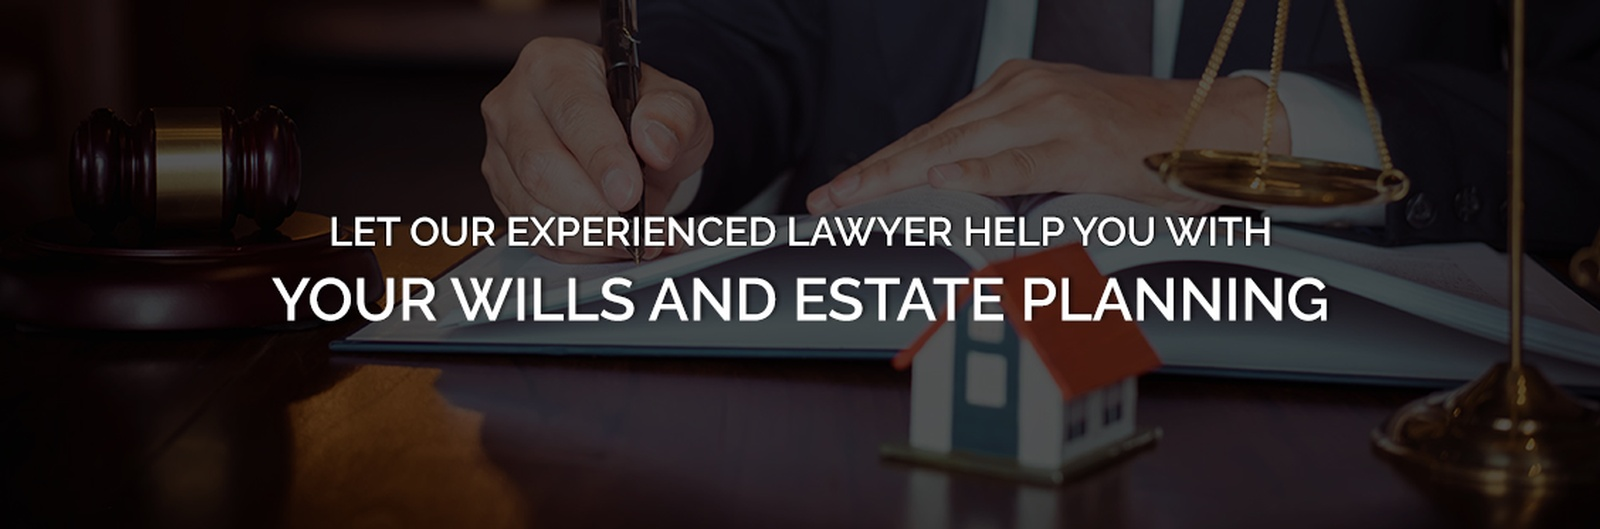 Wills And Estate Planning Services St Cloud Minnesota